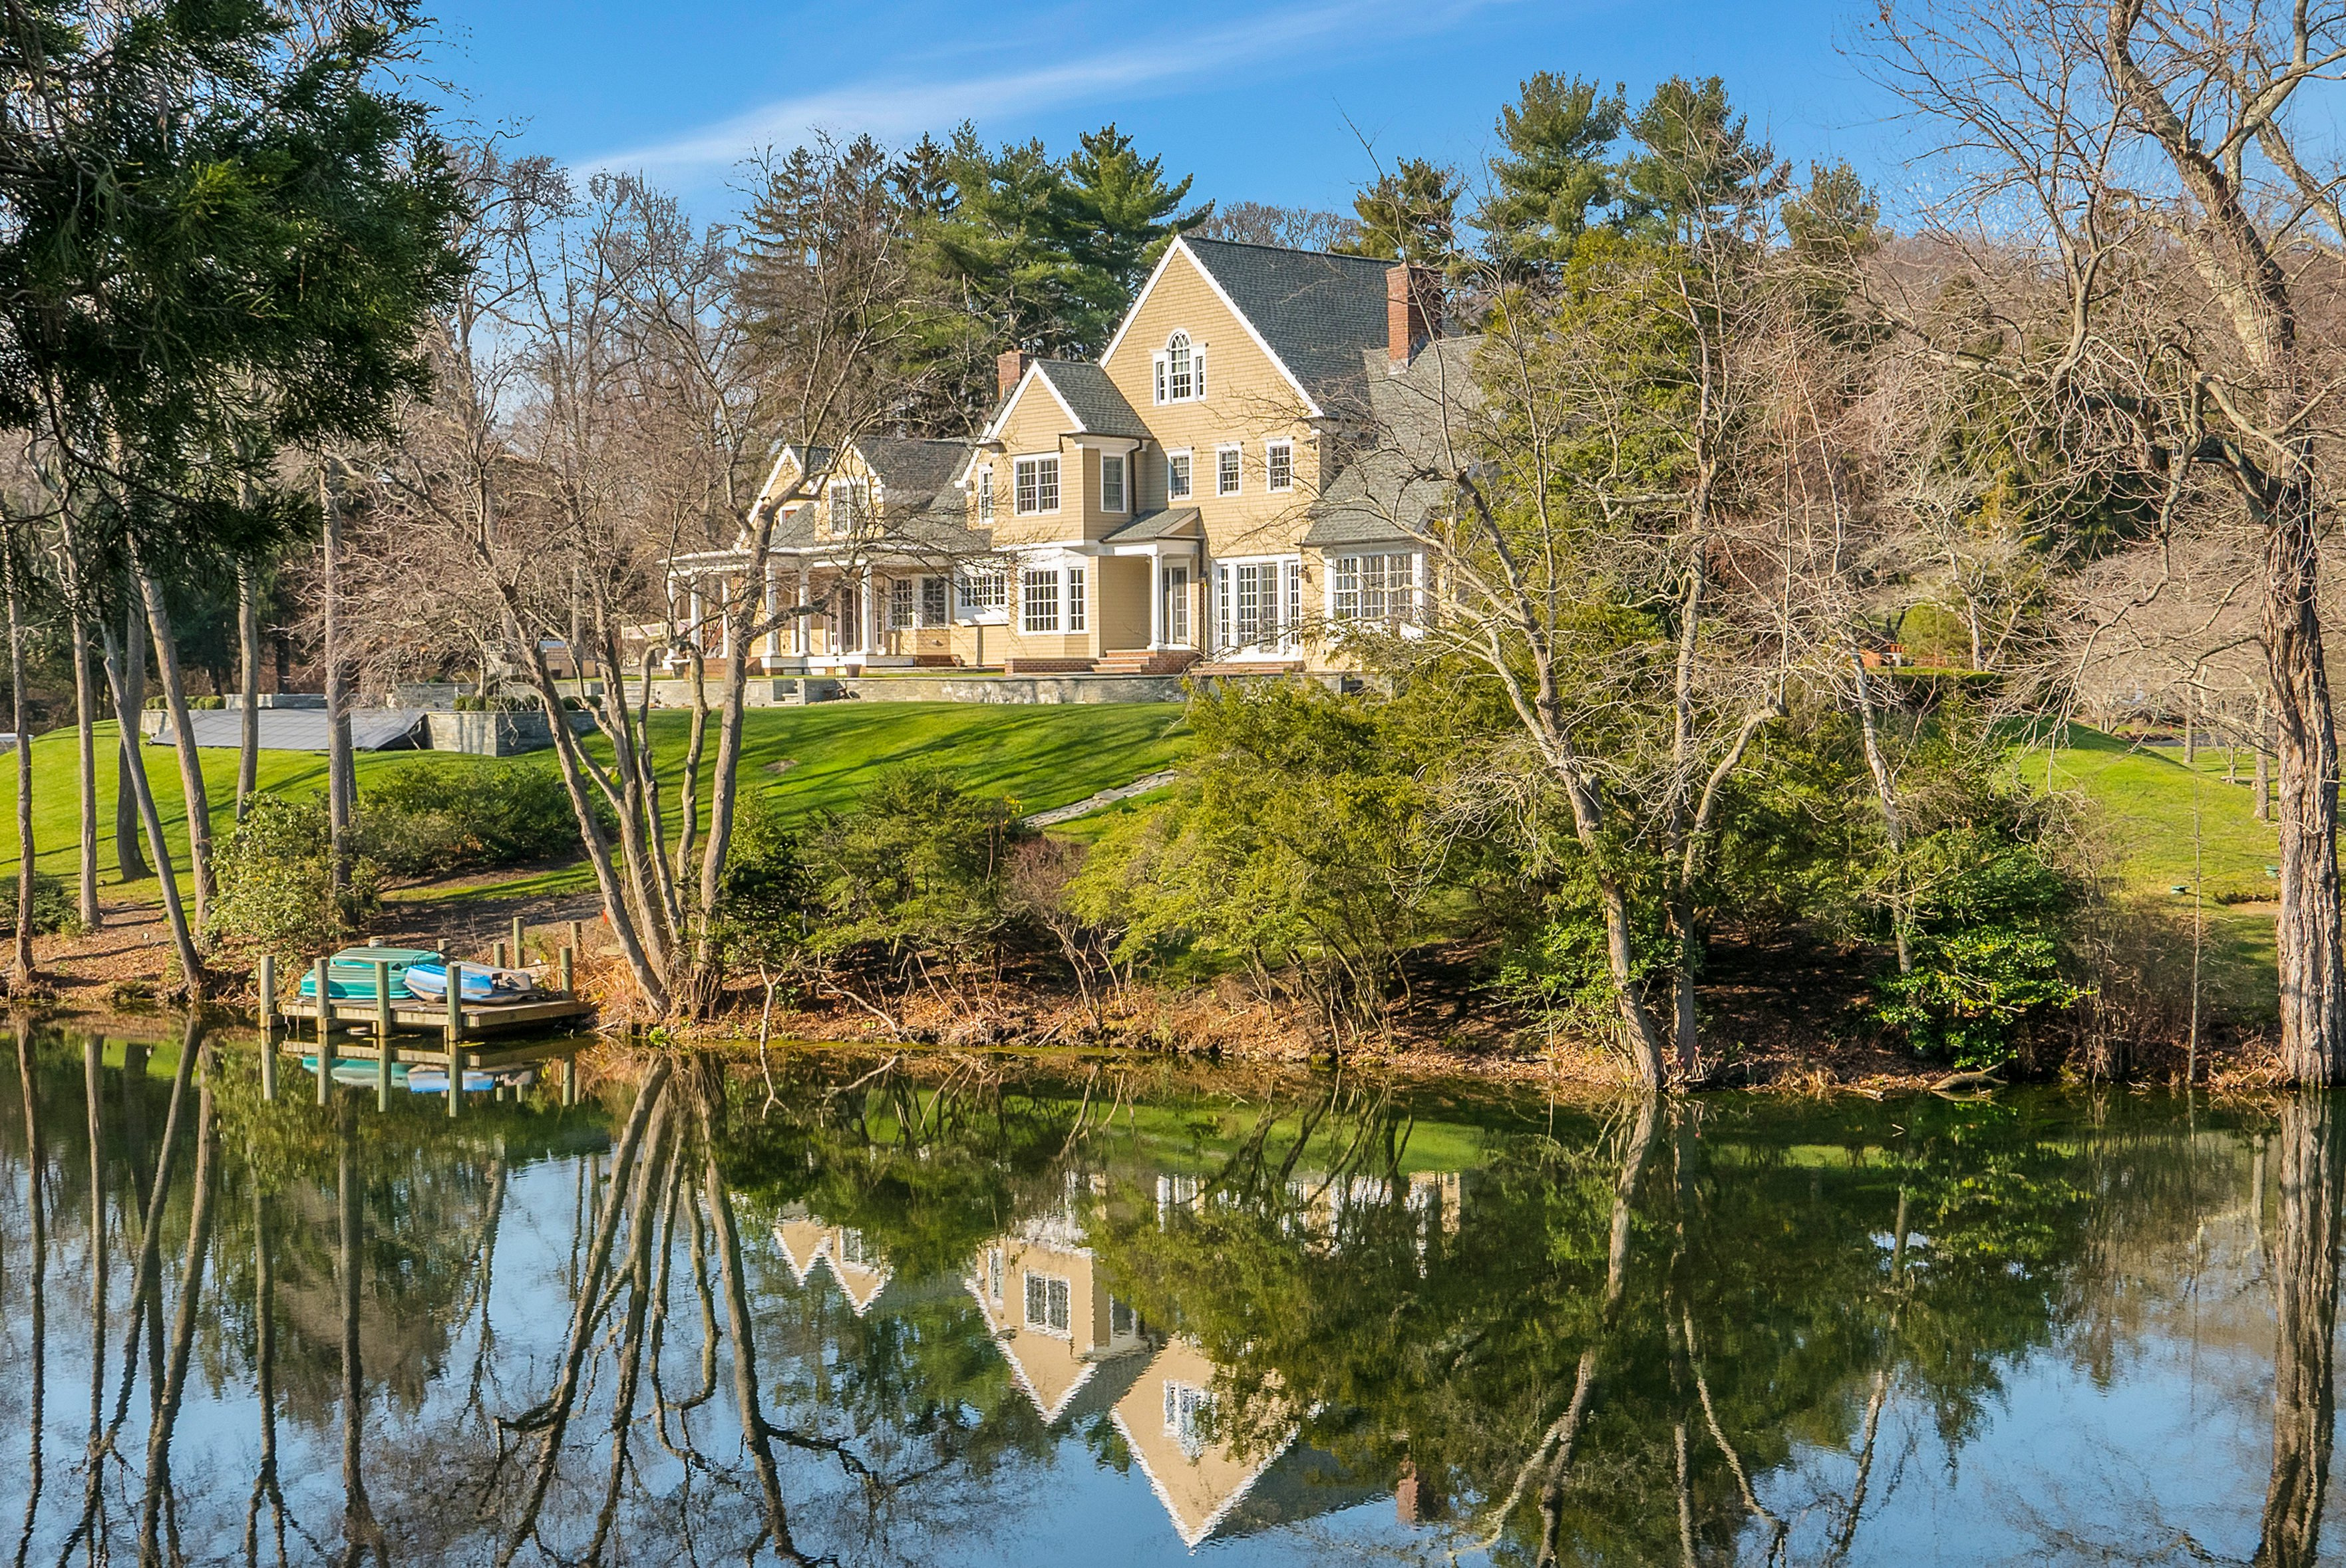 6 Bedrooms, 5,844 sq. ft.Custom estate with pond and stone wine cellar